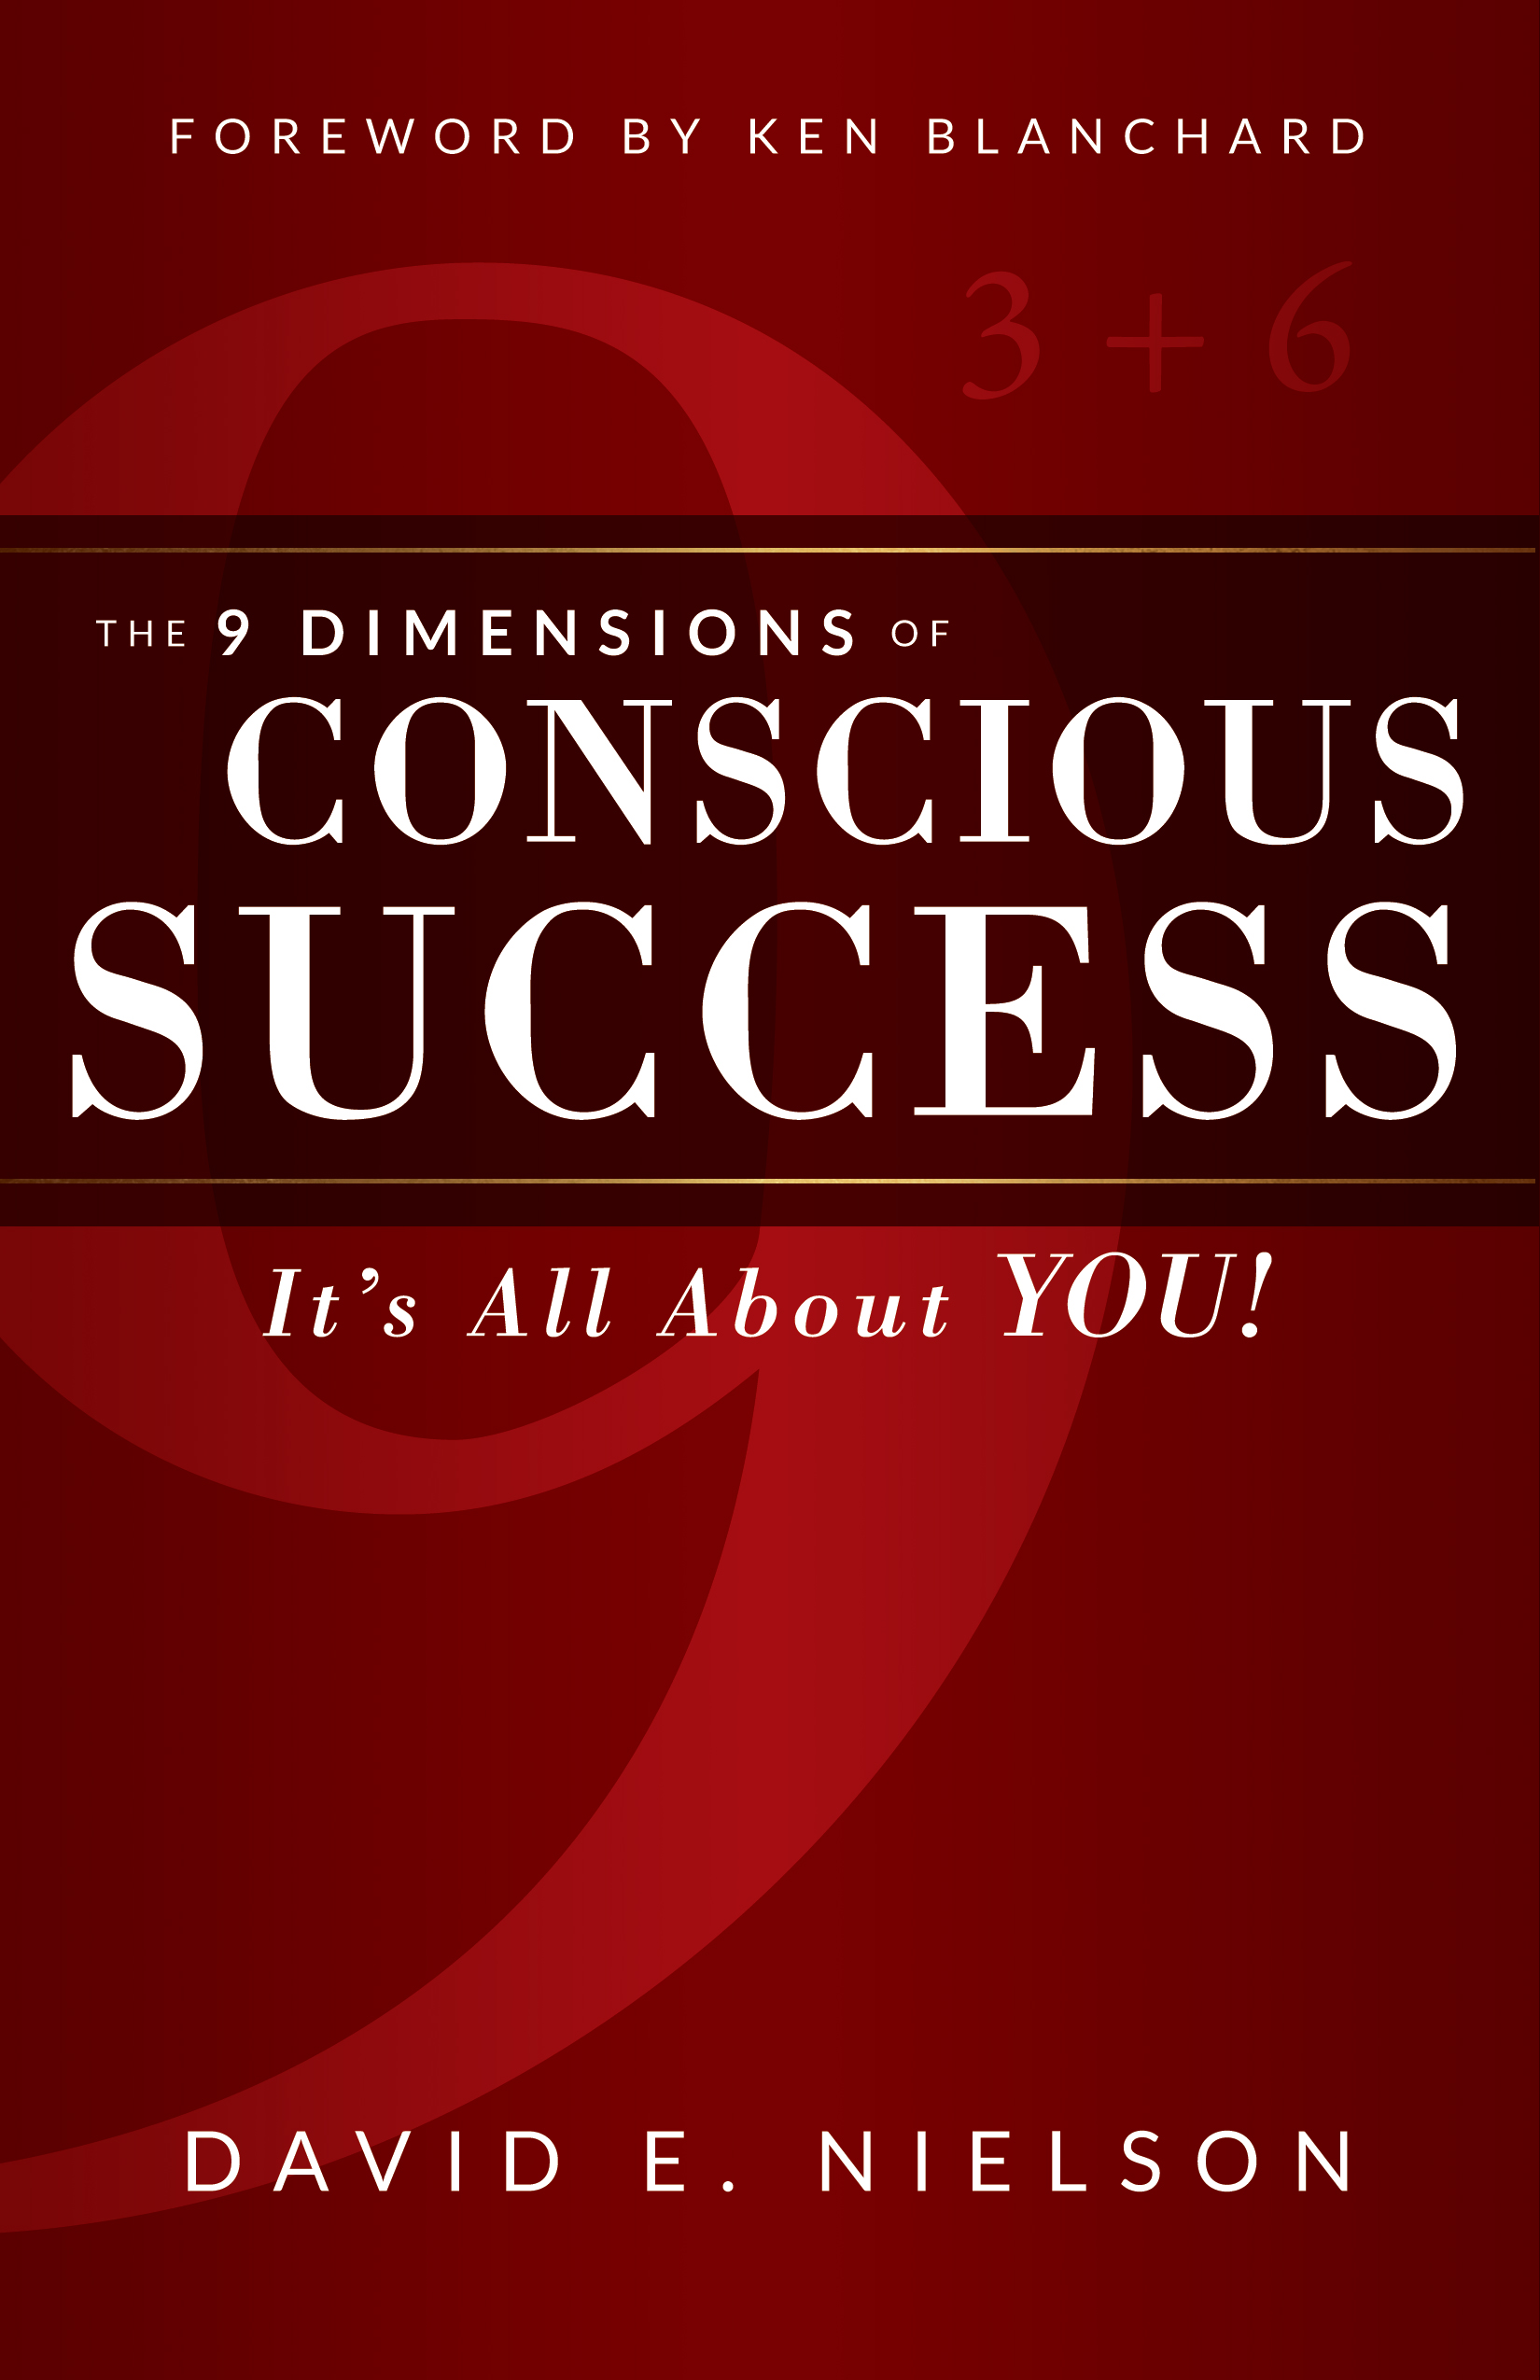 The 9 Dimensions of Conscious Success - By david e. nielson